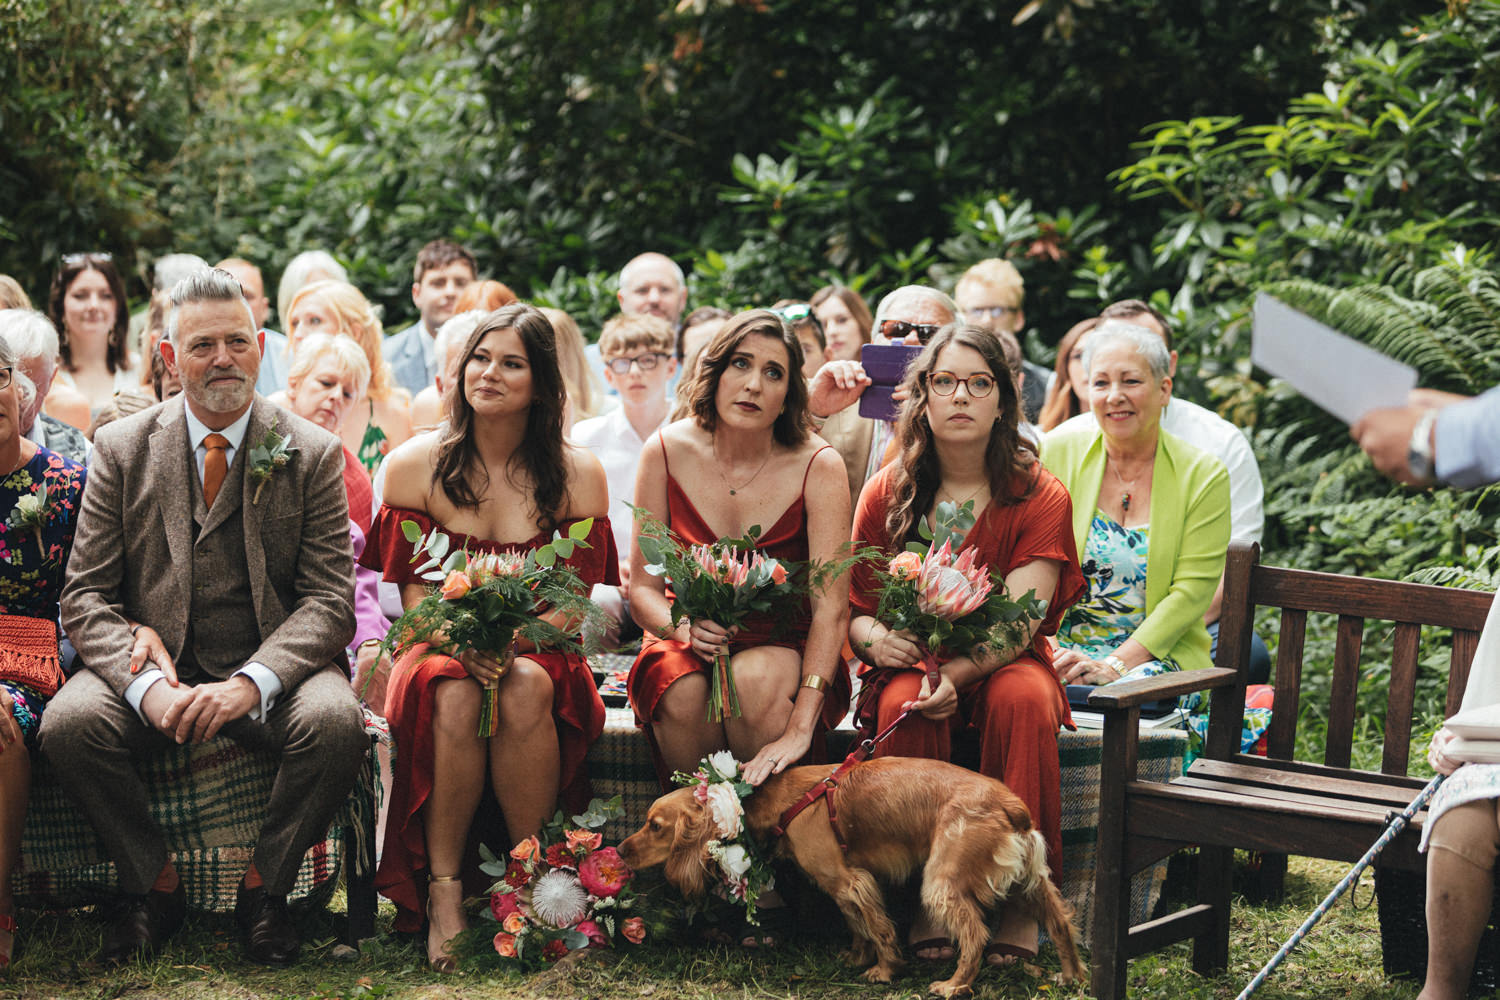 wedding guests at great wood camp, woodland wedding, woodland wedding ceremony, outdoor wedding ceremony, forest wedding, woodland wedding, Quantock Hills, Great Wood Camp Wedding, Great Wood Camp Wedding Photography